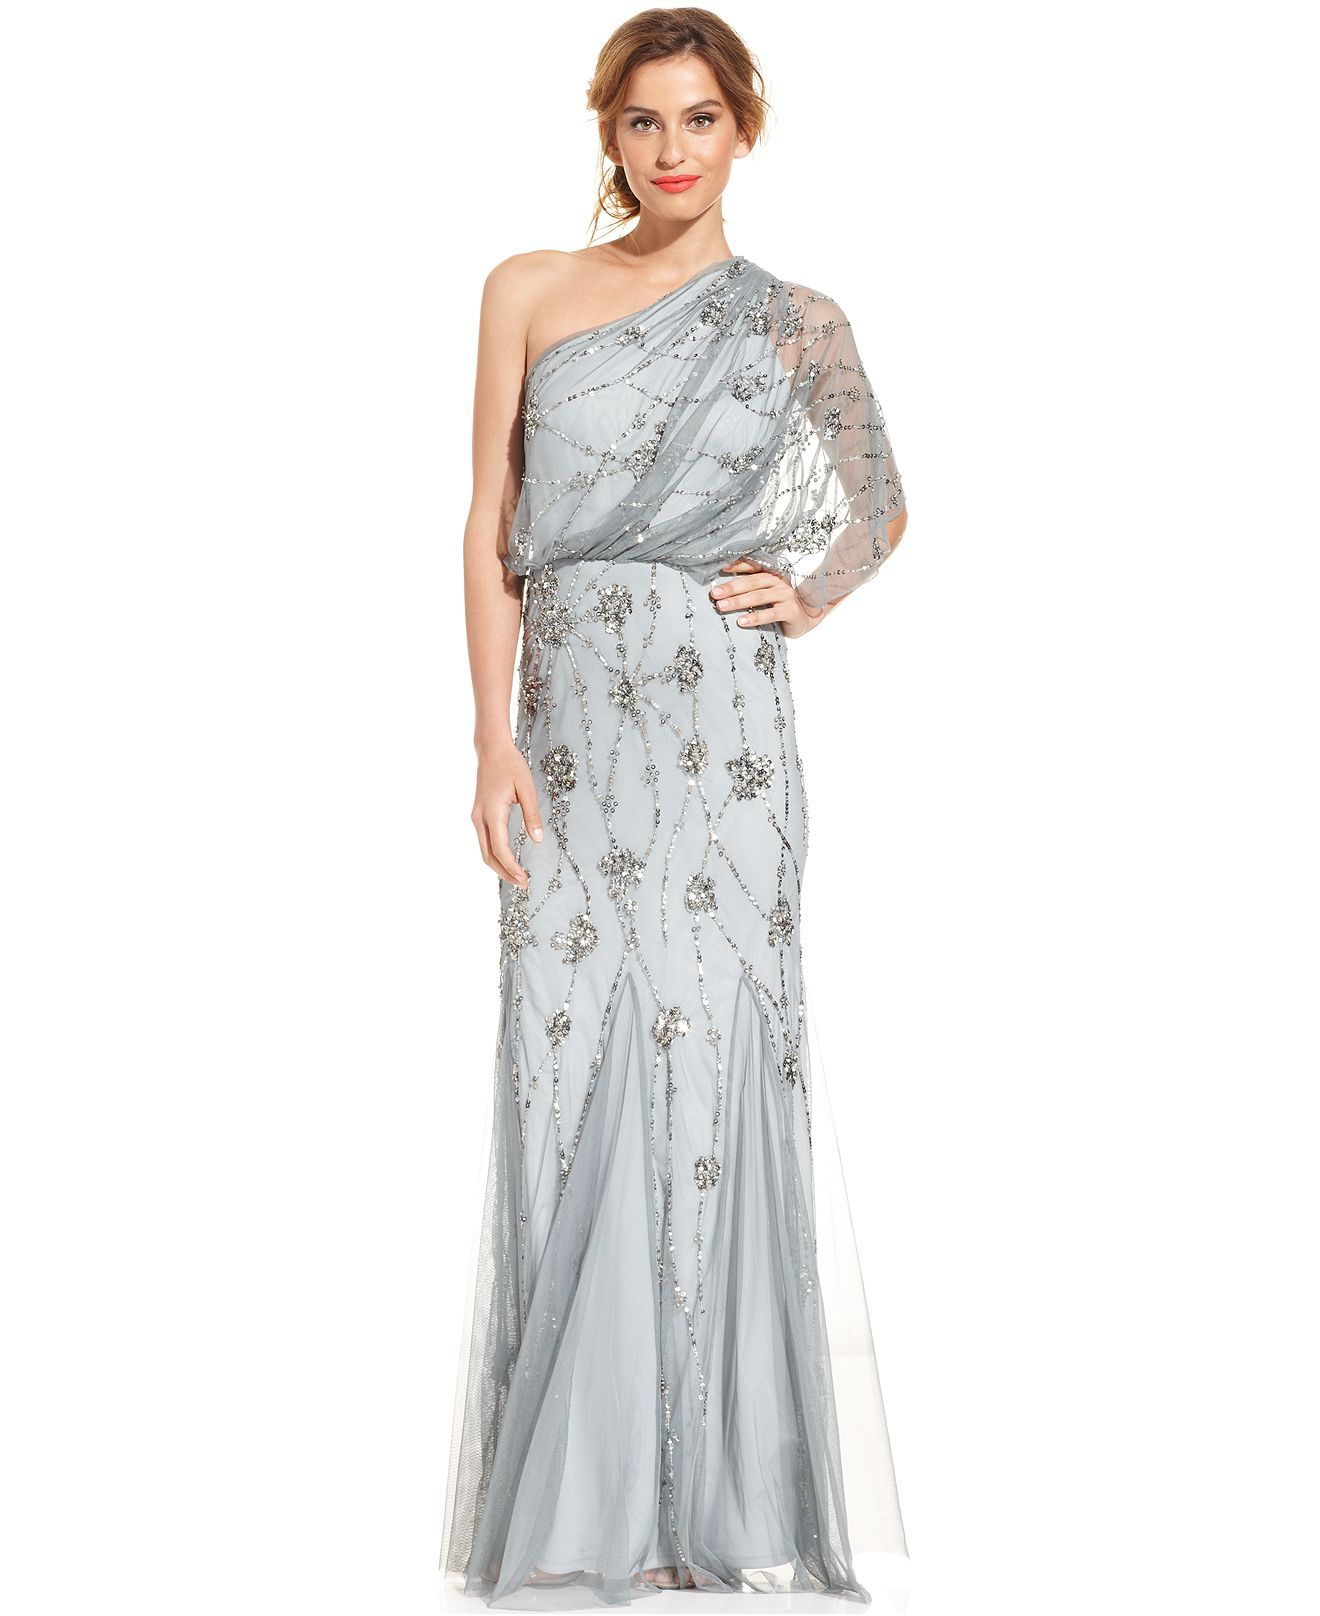 Macy S Wedding Gowns: Adrianna Papell One-Shoulder Beaded Blouson Gown